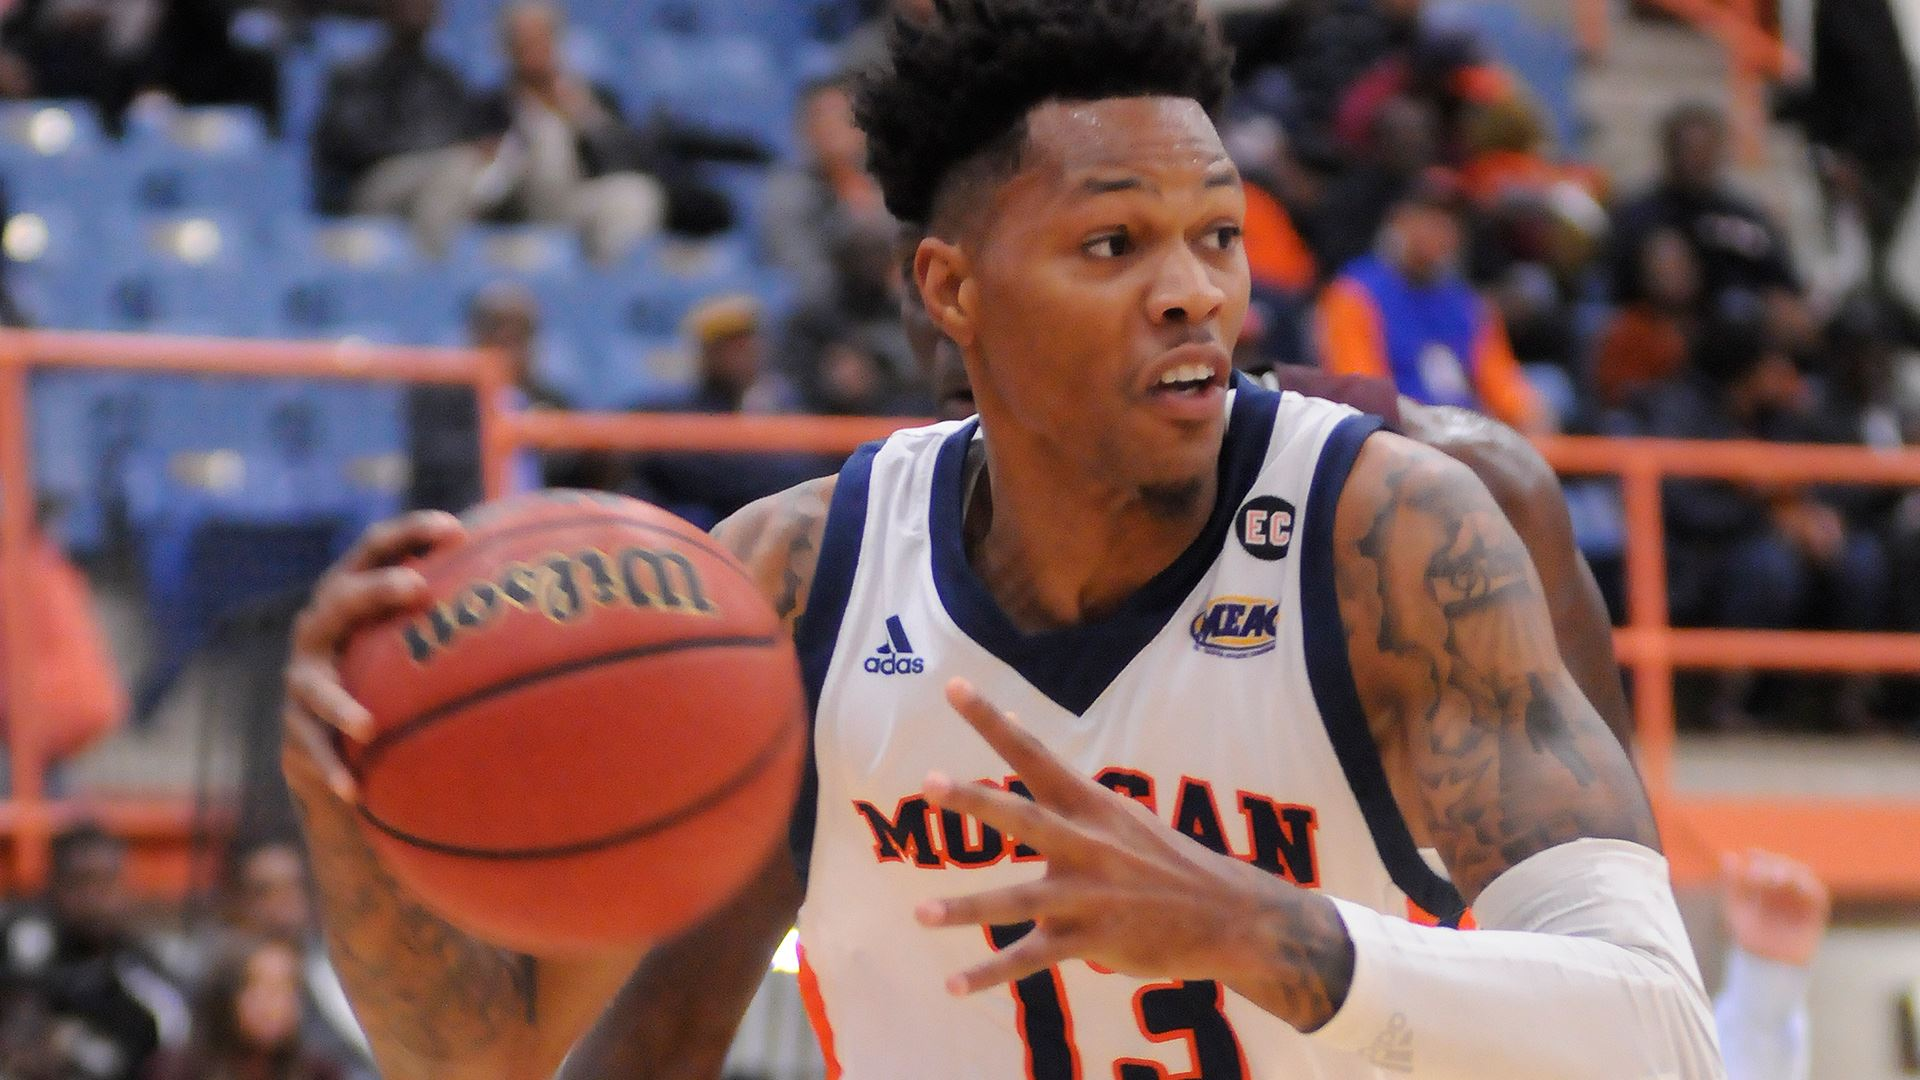 Morgan State Falls To Evansville In Three Overtimes